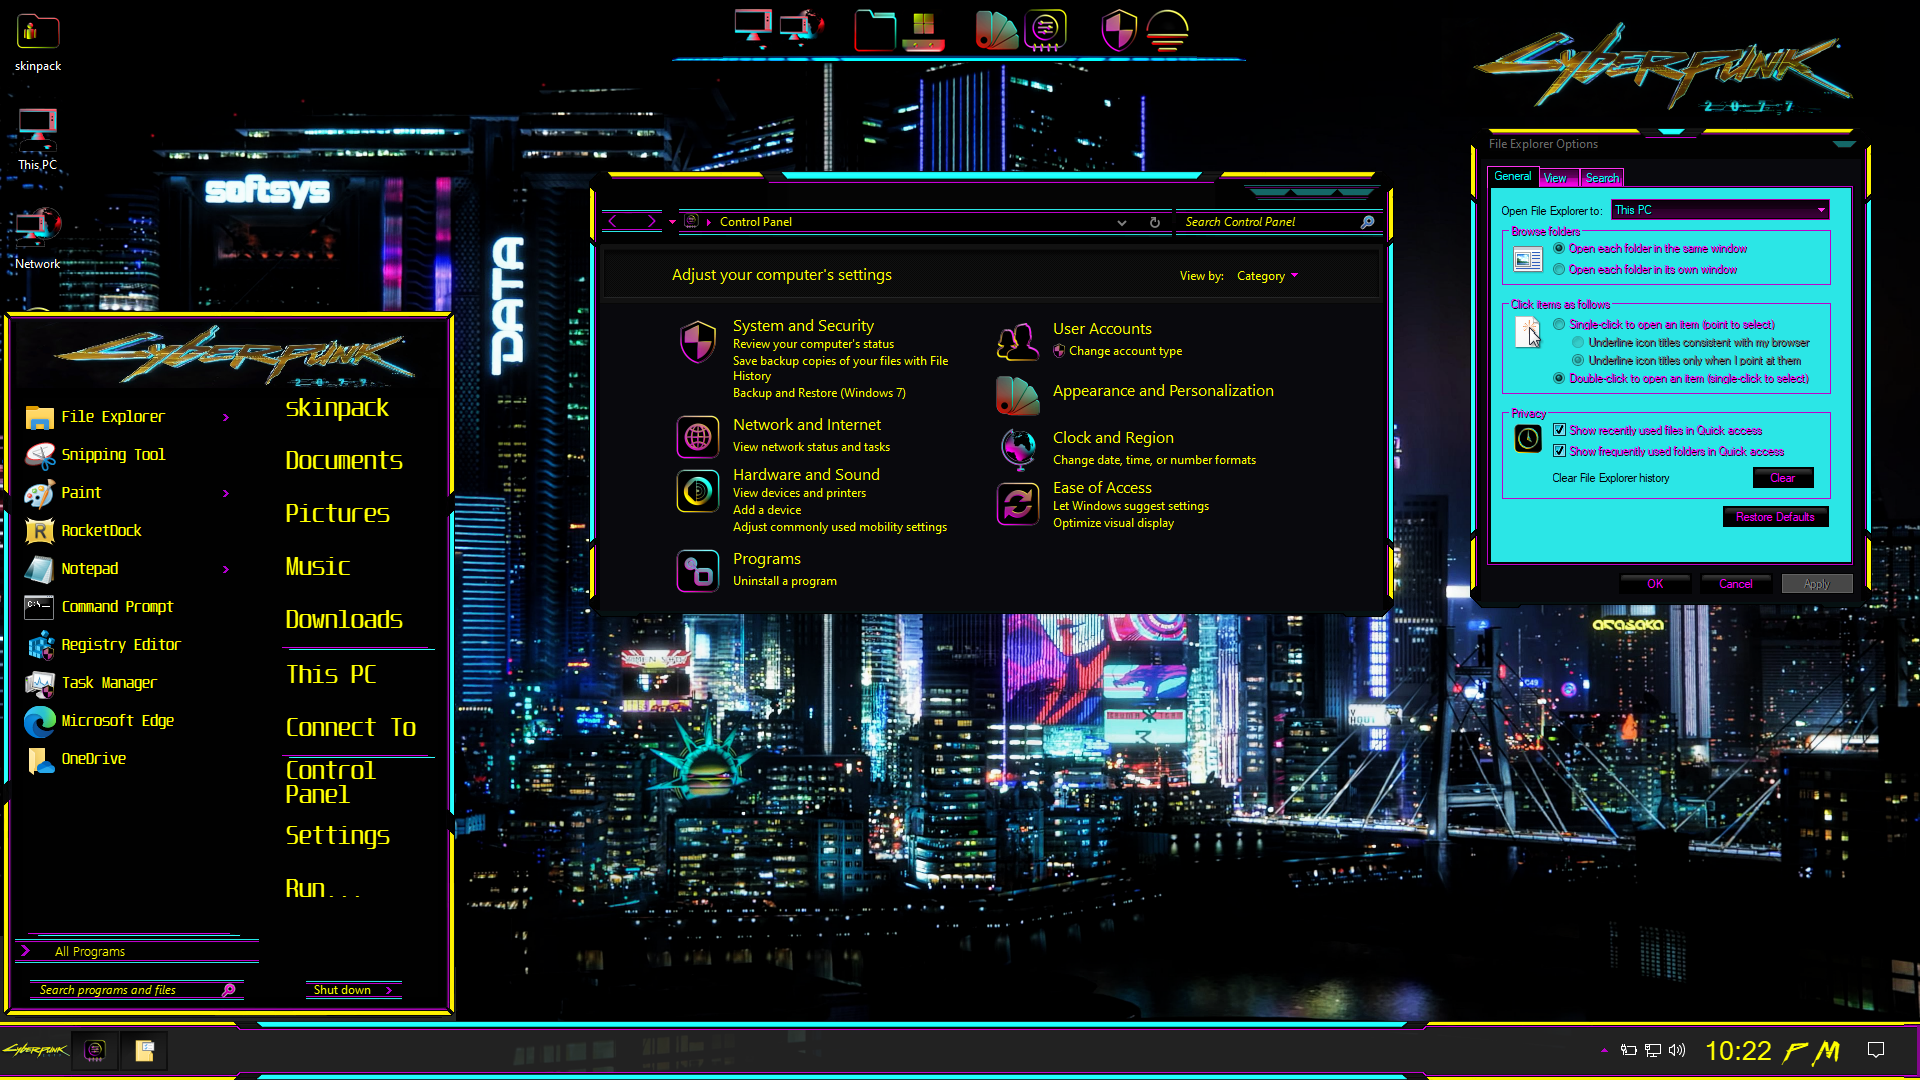 Cyberpunk 2077 Premium SkinPack for Windows 10